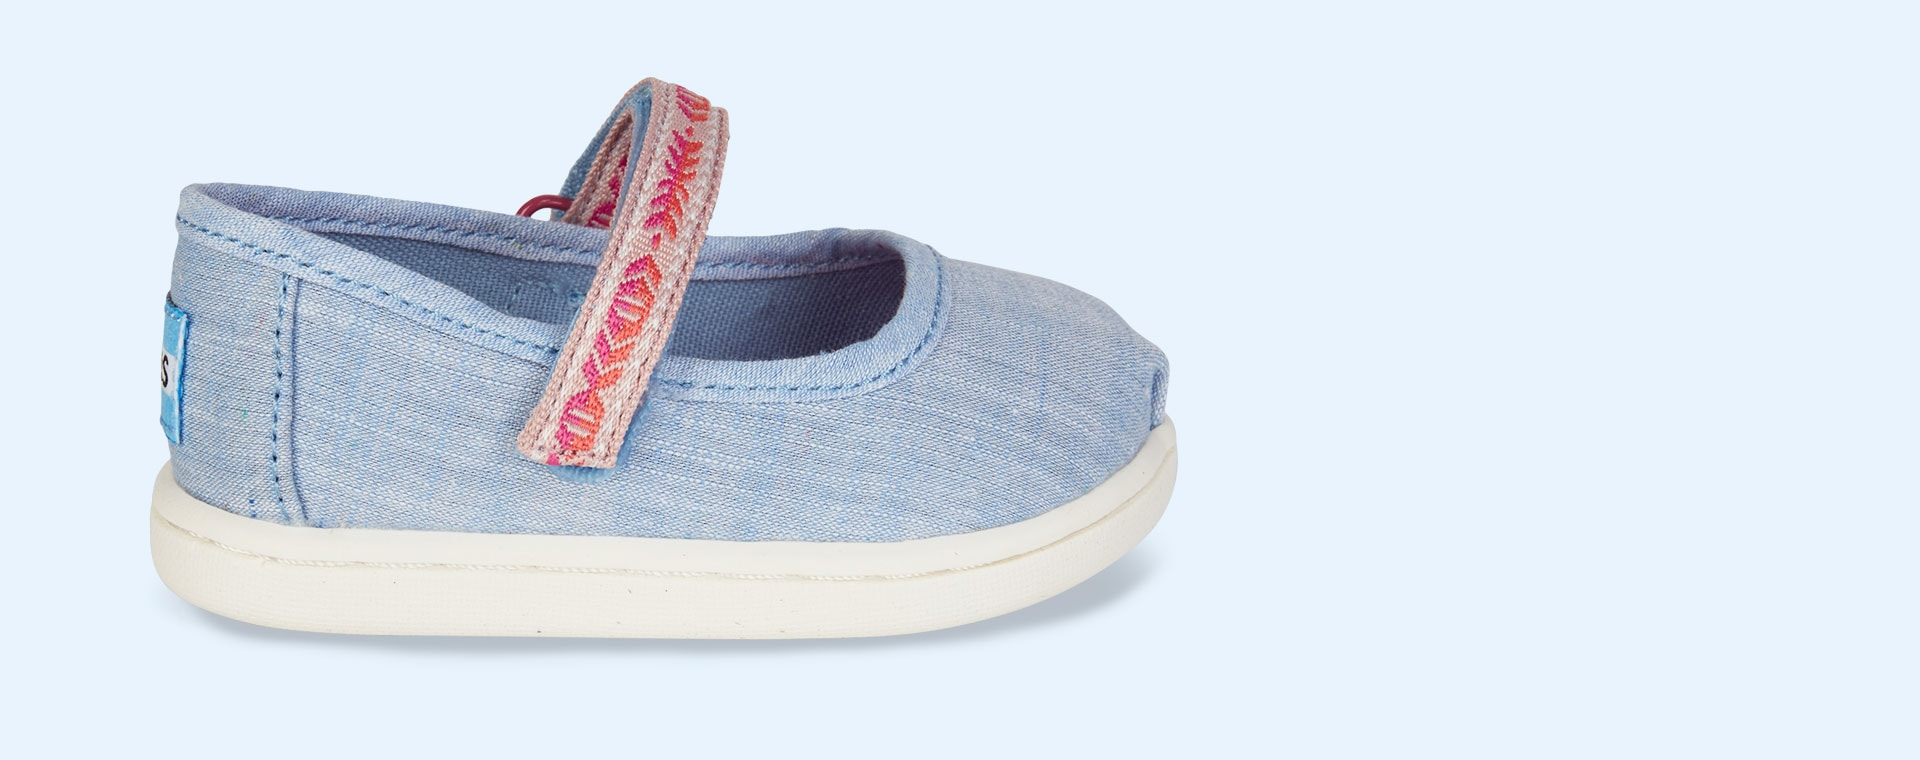 1aaaf8e69f3 Buy the TOMS Mary Jane Shoe at KIDLY UK